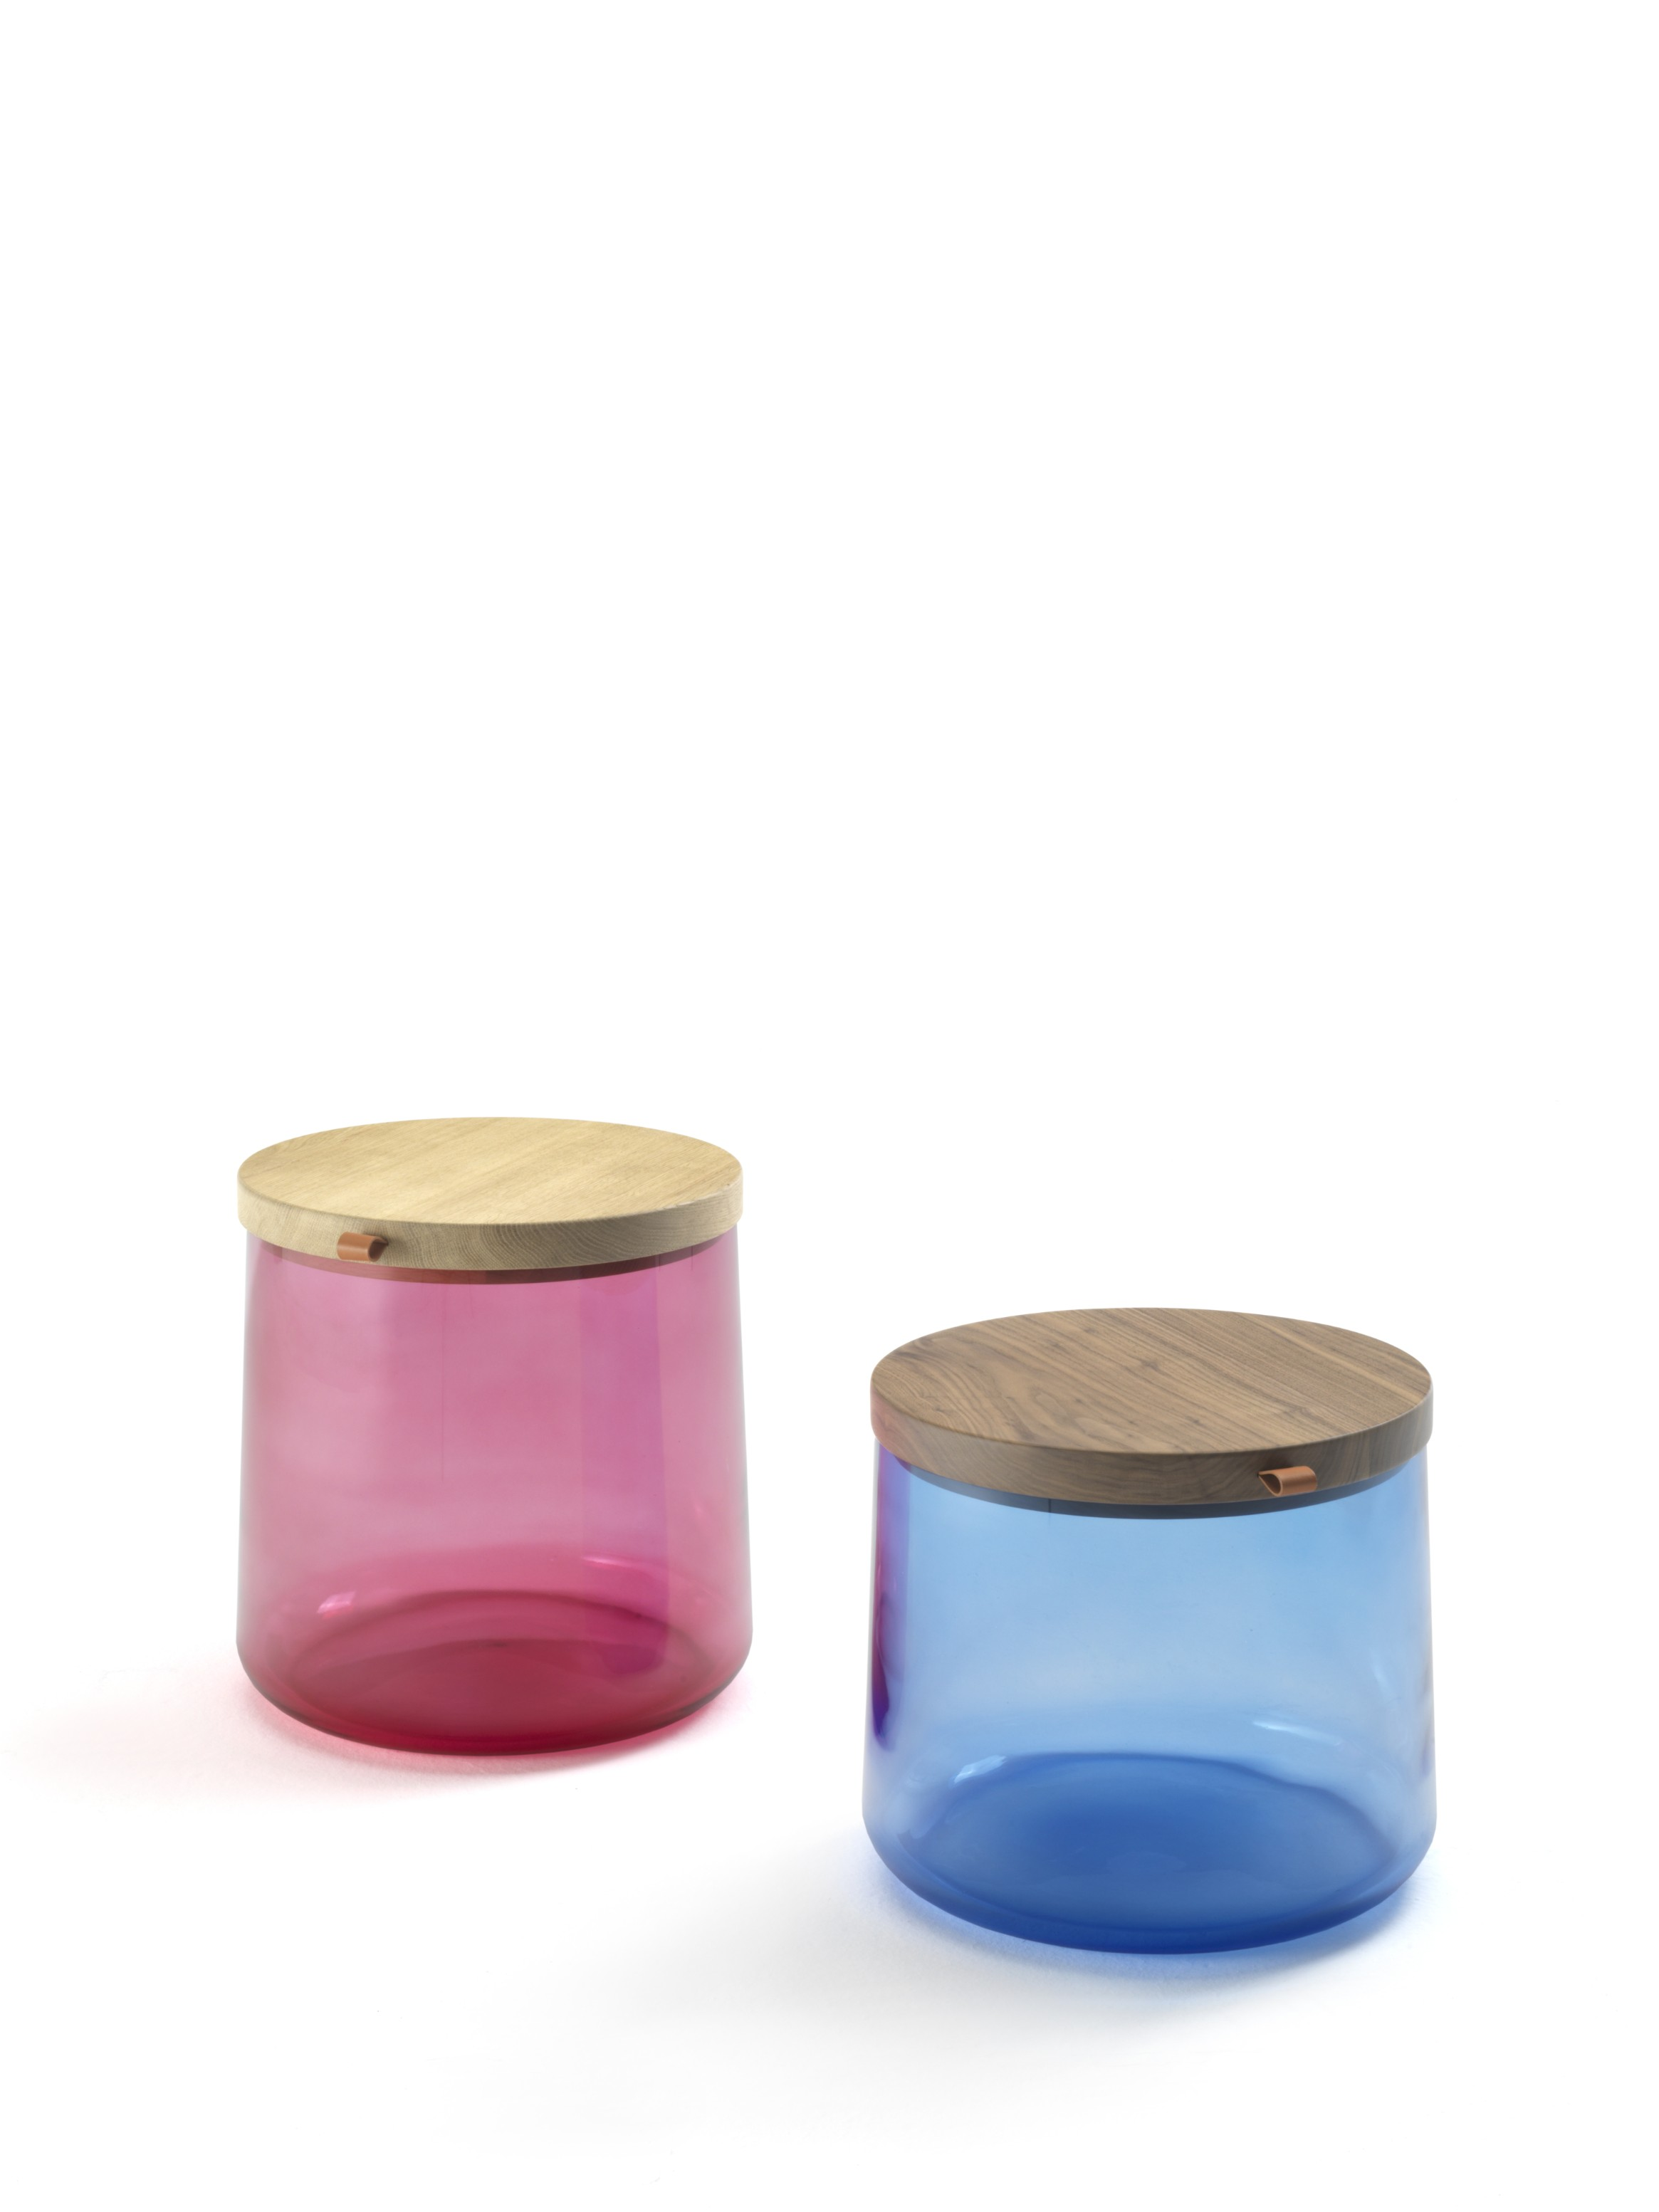 Tea Side Tables - A little series of small container tables made up of a big colourful glass vase in which you can place objects, newspapers or other personal items and a wooden cap that works as a table top and can be useful as a tray. The glass vase is available in a wide range of colours on request, please enquire for more details. | Matter of Stuff